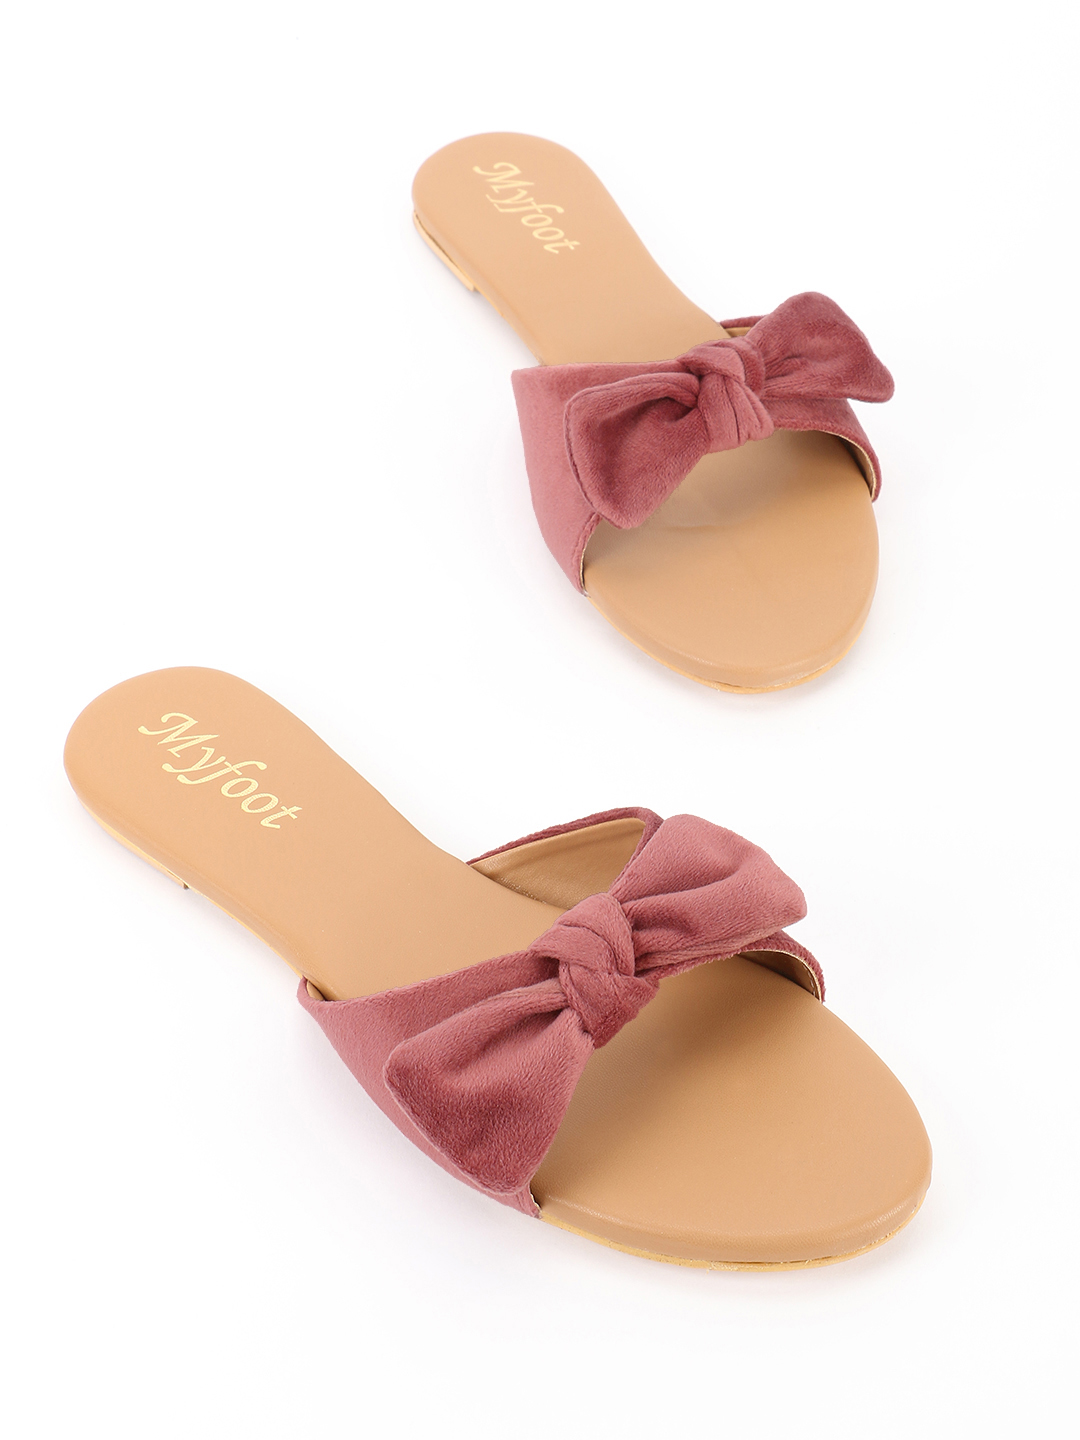 My Foot Couture Pink Velour Bow Tie Flat Sandals 1